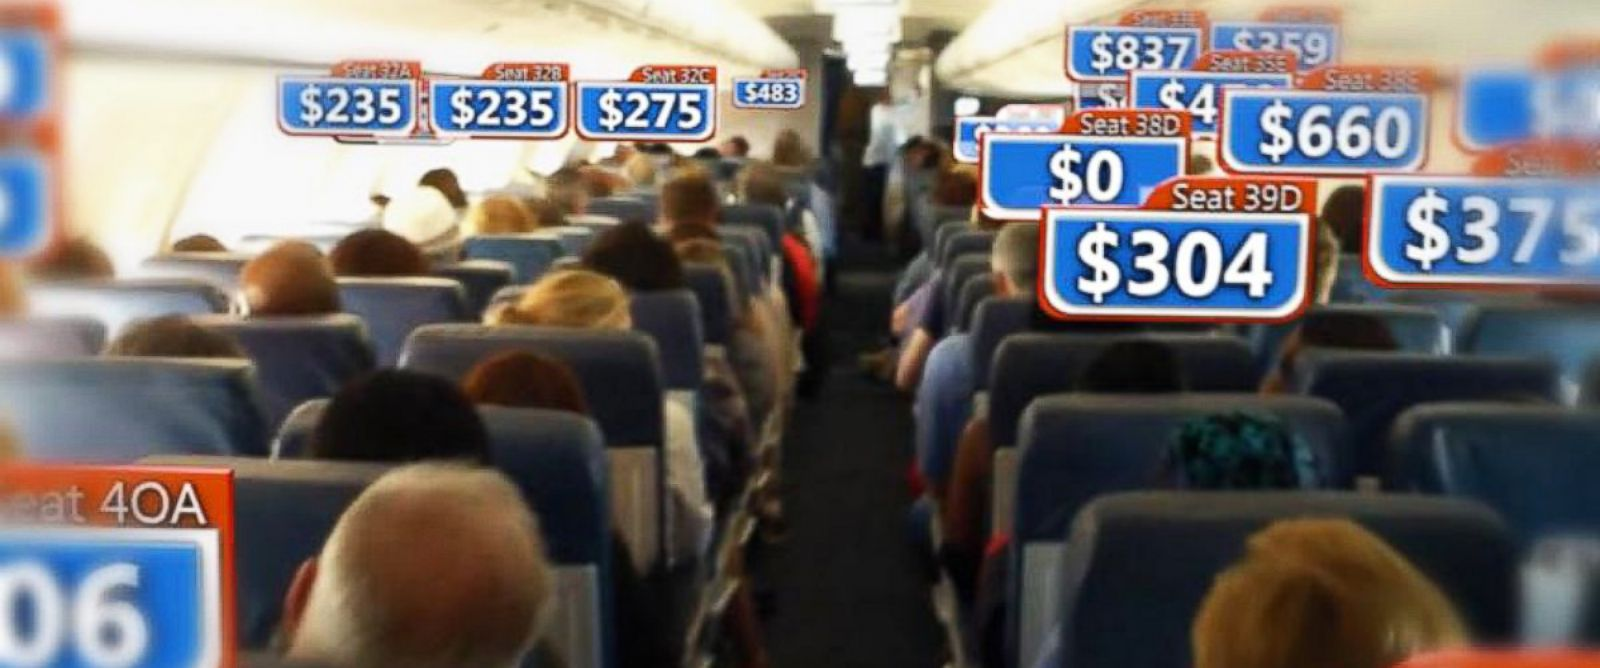 Air Prices Airline Ticket Prices Shown To Vary Wildly Among Seats On